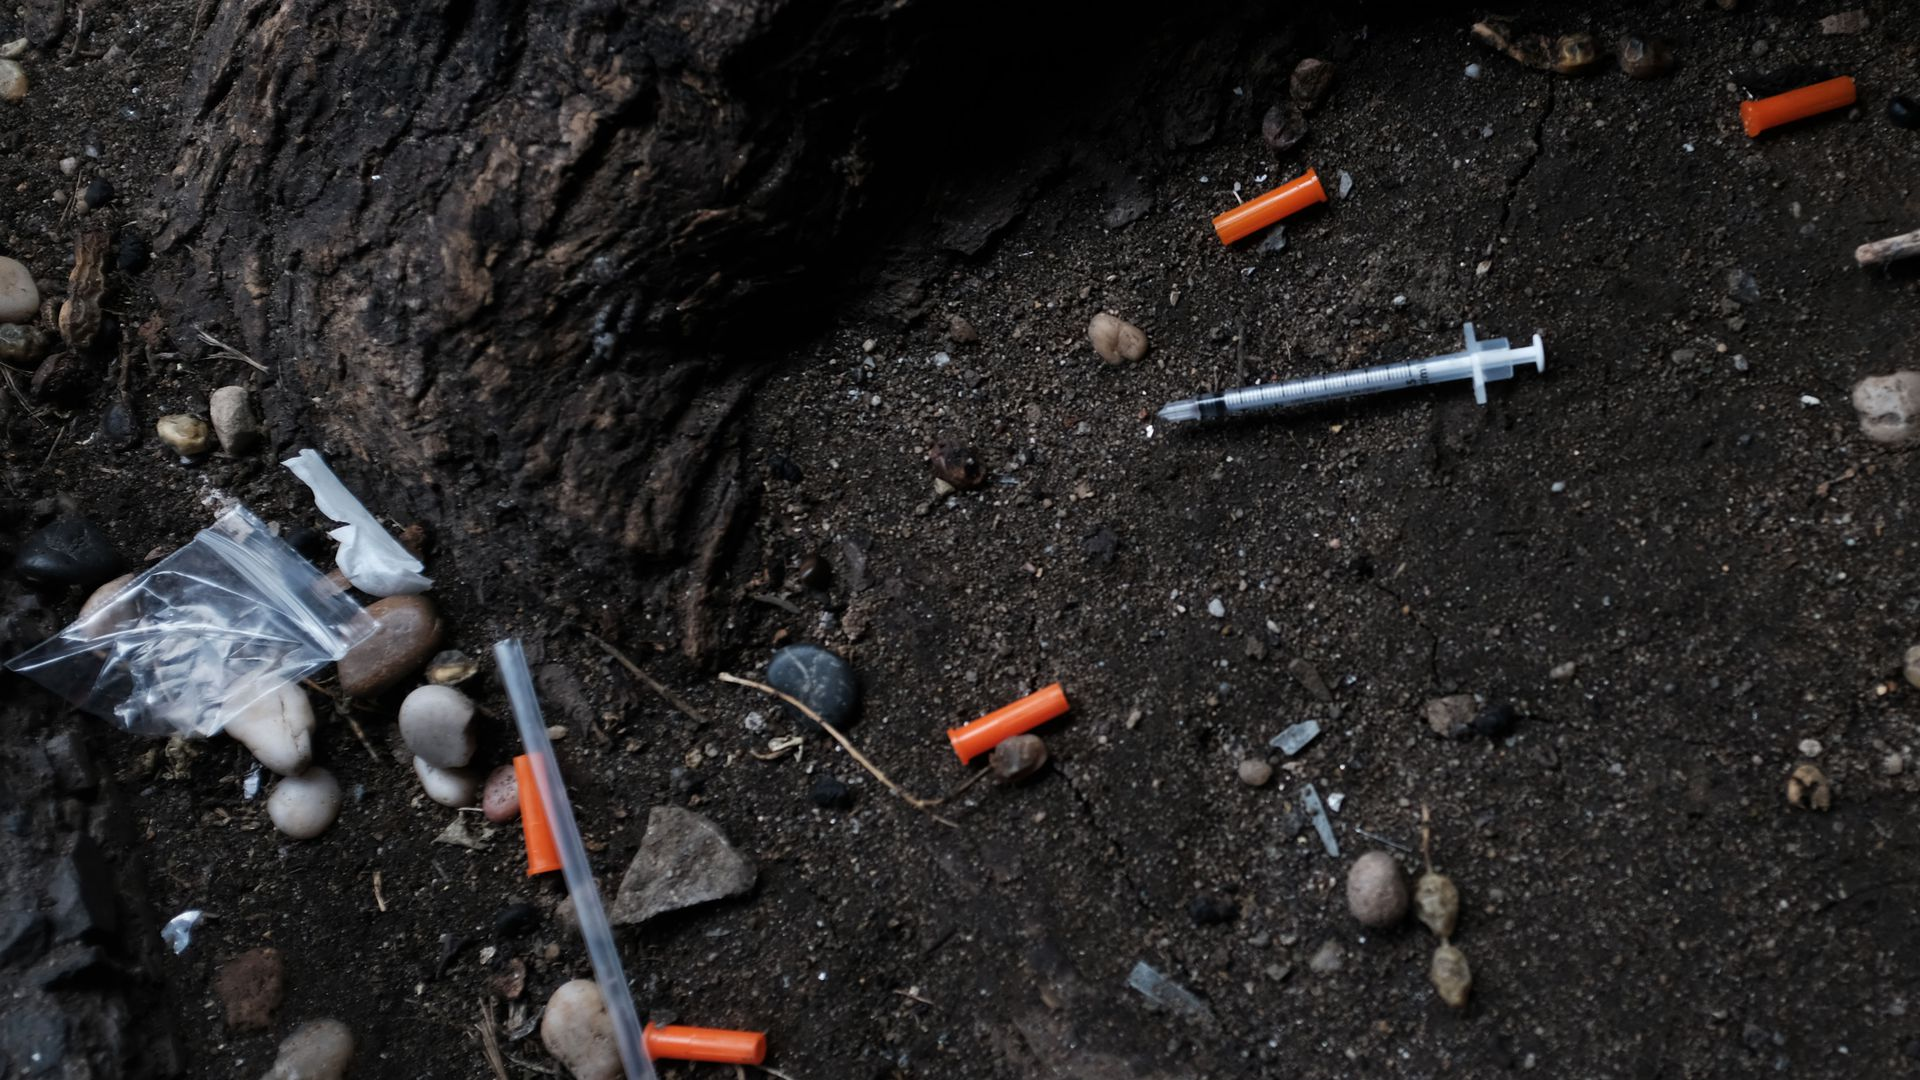 Hypodermic needles litter the ground in the South Bronx on March 13, 2019.